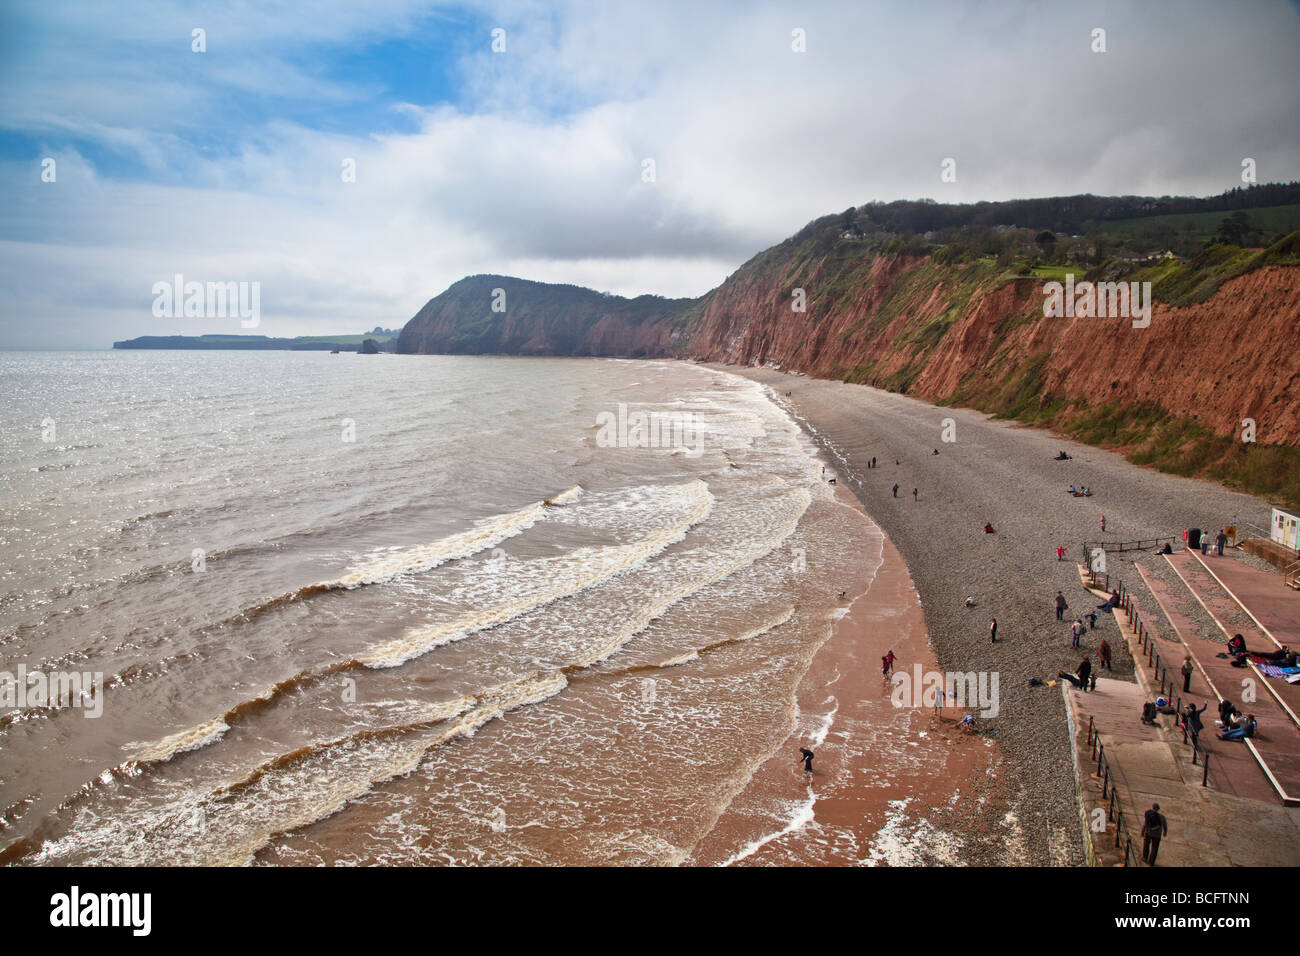 Jacob's Ladder beach in Sidmouth, Devon (UK) shot in spring sunshine on 16th April 2009 - Stock Image